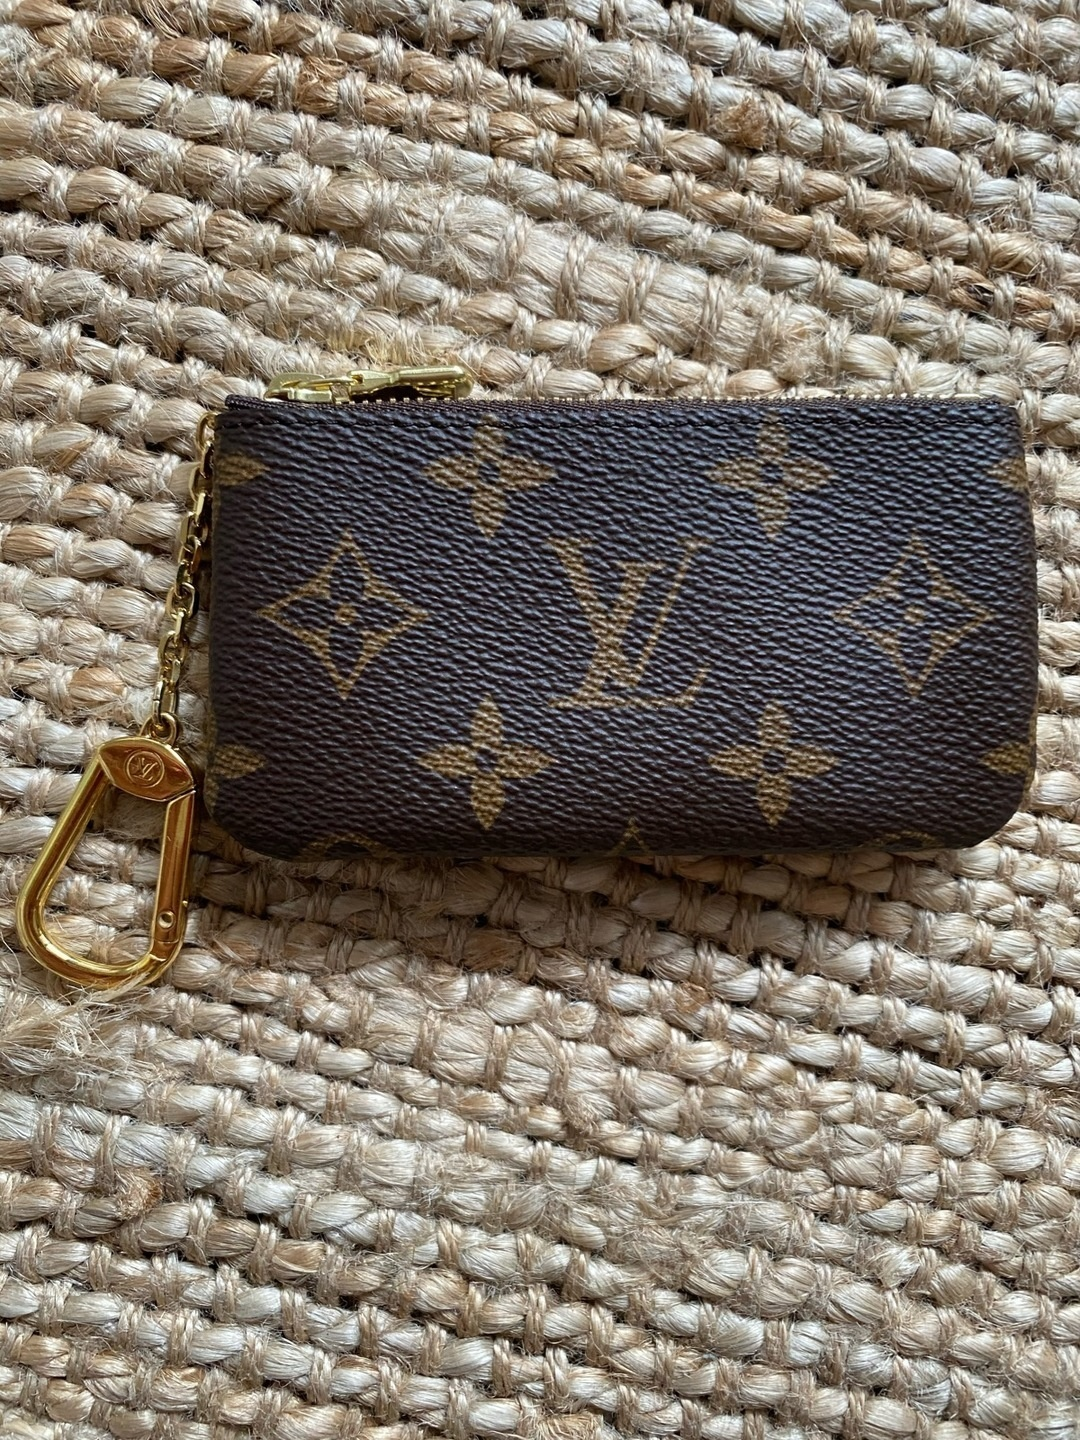 Women's bags & purses - LOUIS VUITTON photo 2